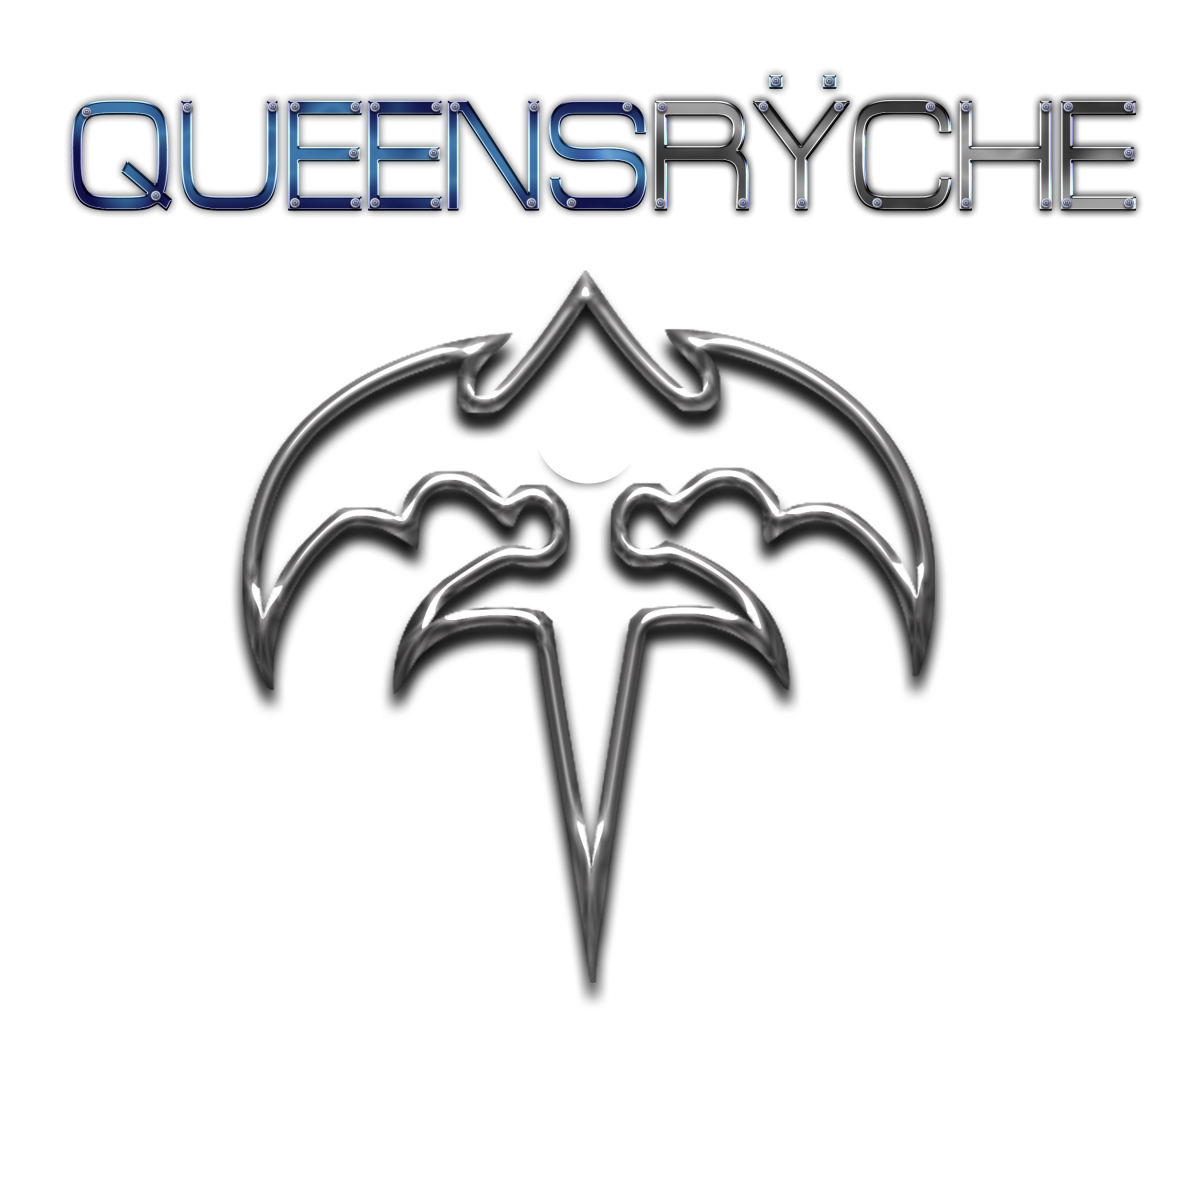 Queen Band Logo Png Queensryche Investor V...